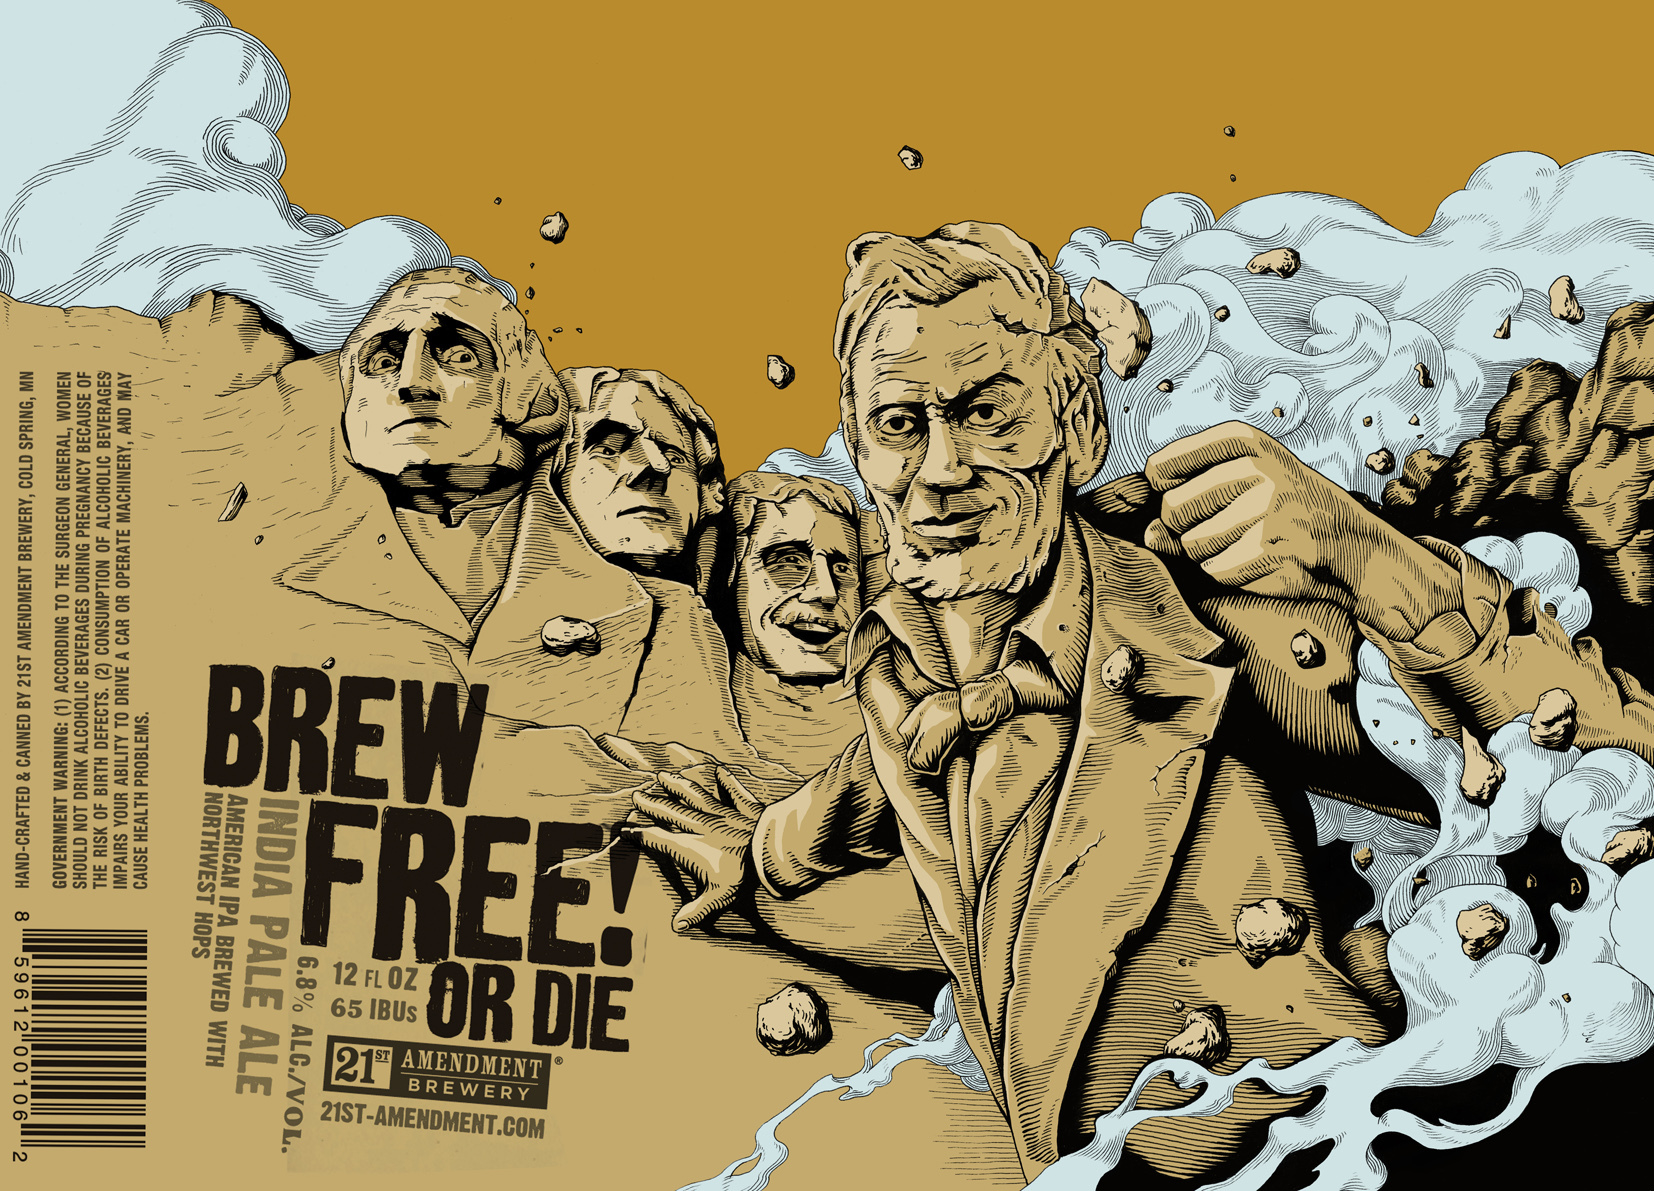 Brew Free Or Die - 21st Amendment Brewery Packaging